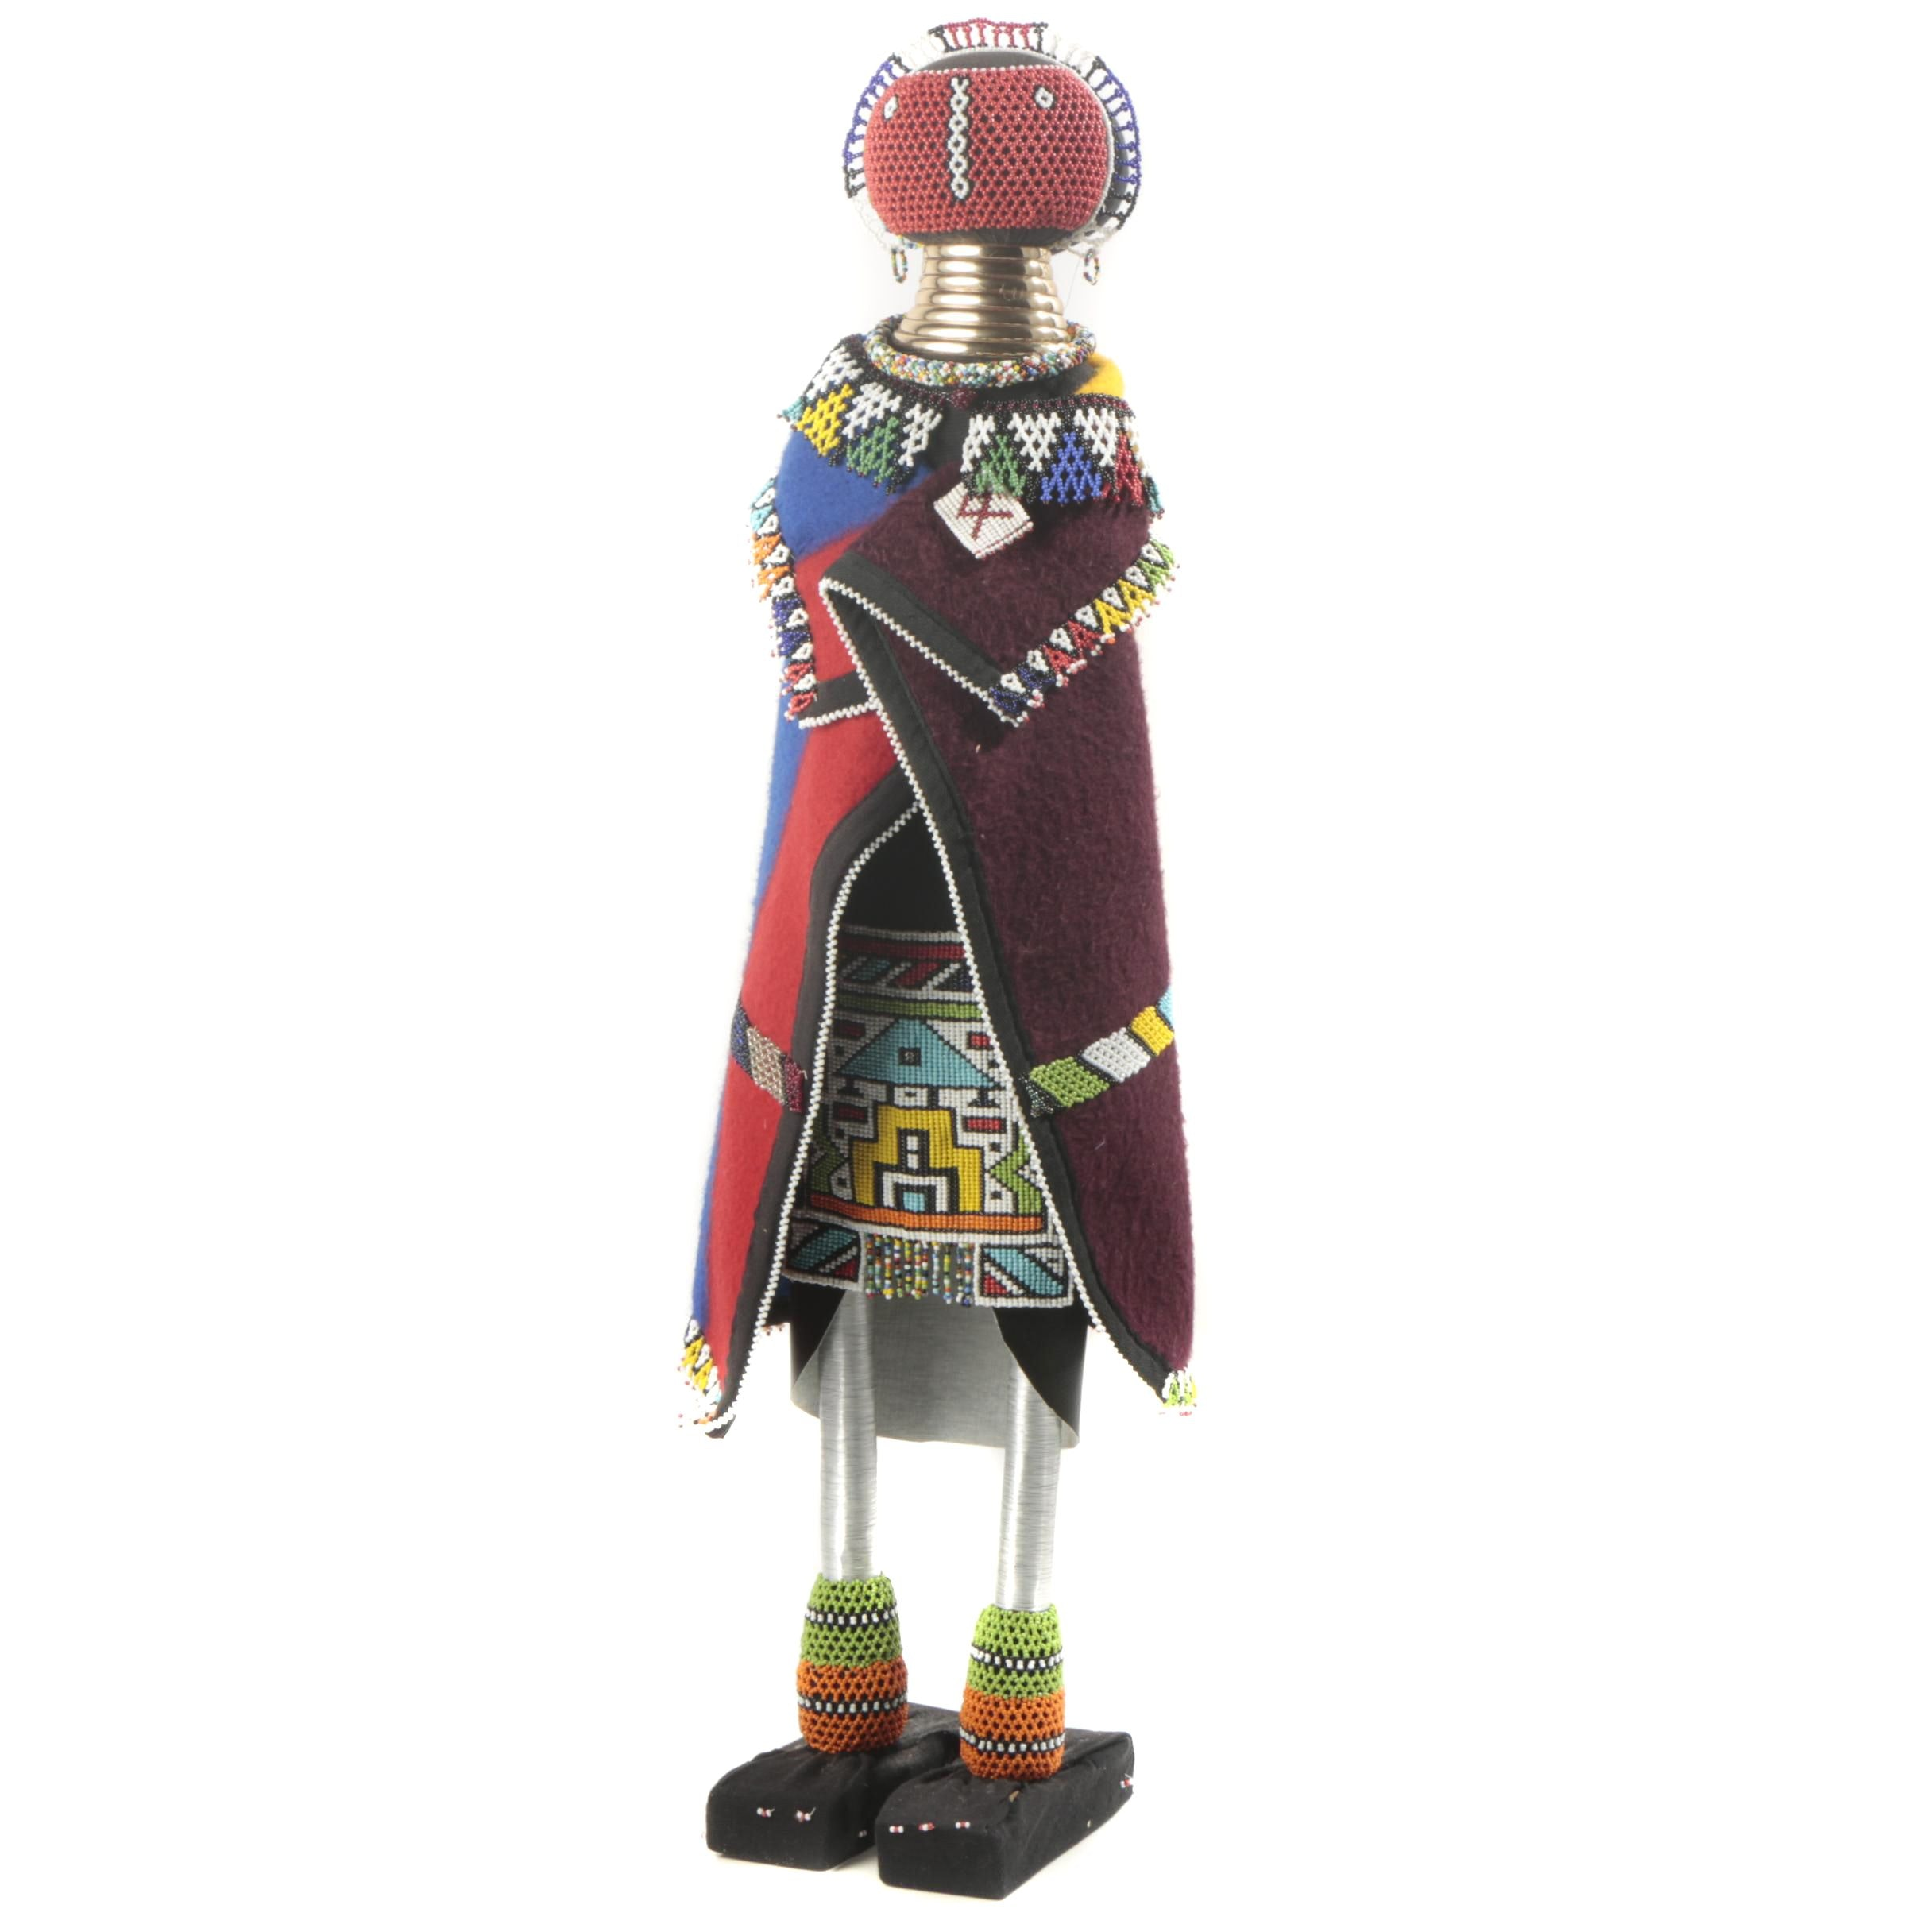 Ndebele Style Beaded Figure From South Africa